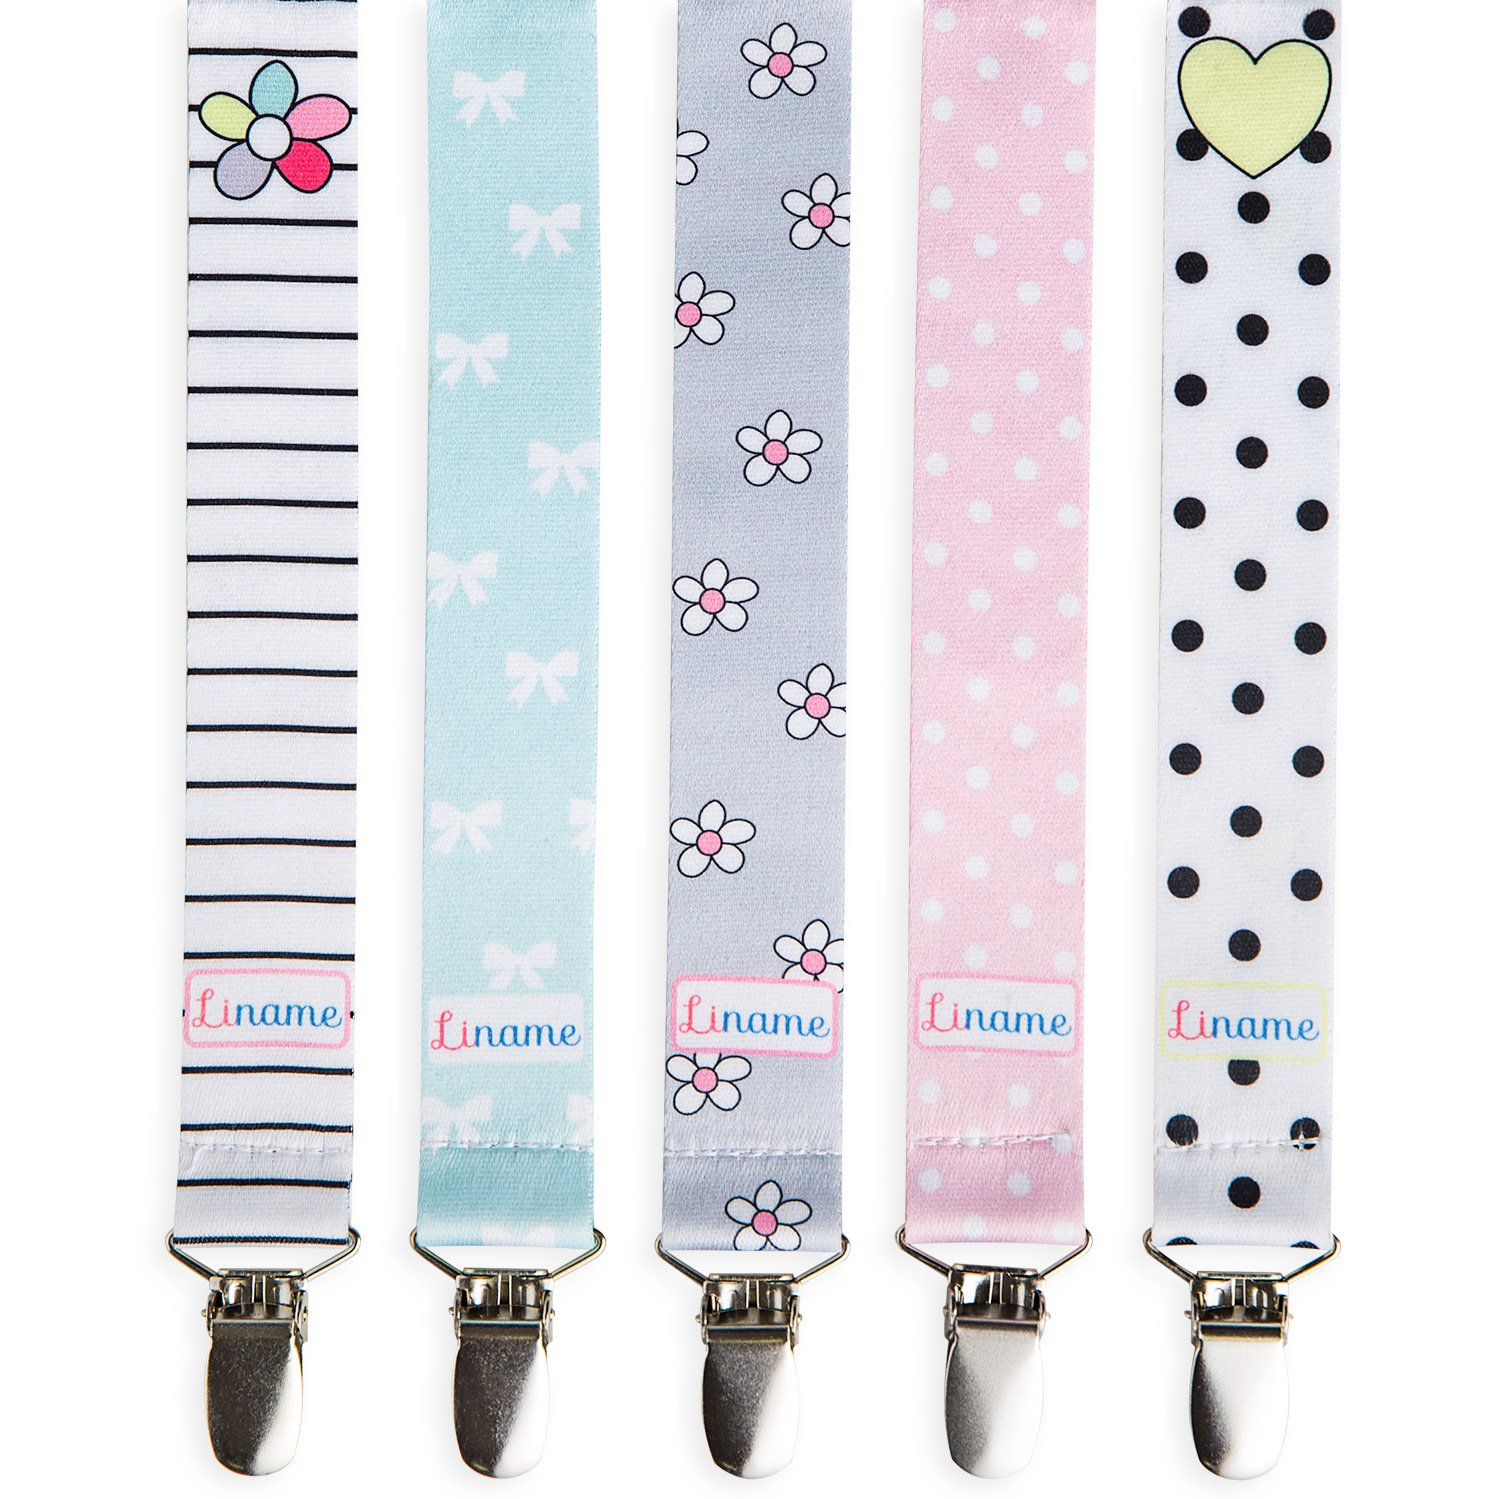 Liname Pacifier Clip for Girls with BONUS eBook - 5 Pack Gift Packaging - Premium Quality & Unique Design - Pacifier Clips Fit ALL Pacifiers & Soothers - Perfect Baby Gift aa